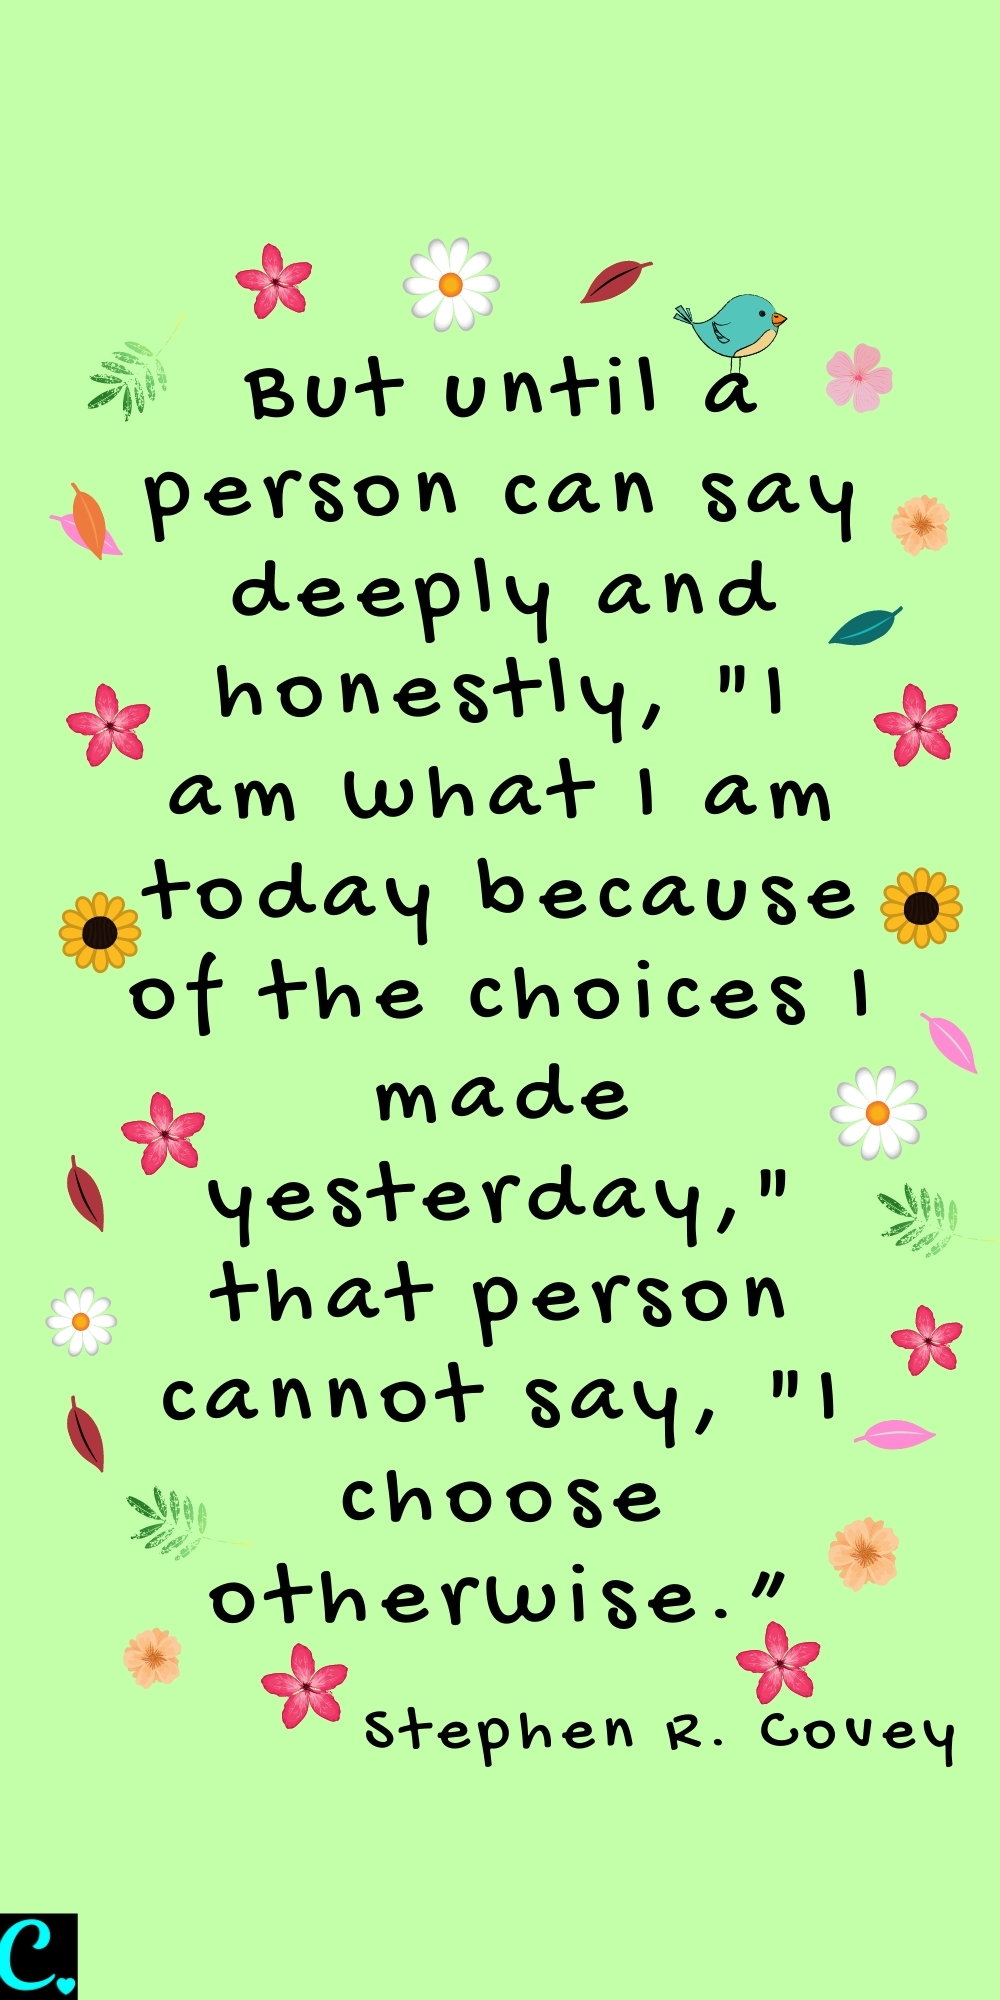 """But until a person can say deeply and honestly, ""I am what I am today because of the choices I made yesterday,"" that person cannot say, ""I choose otherwise."" #quotes quotes about choice"